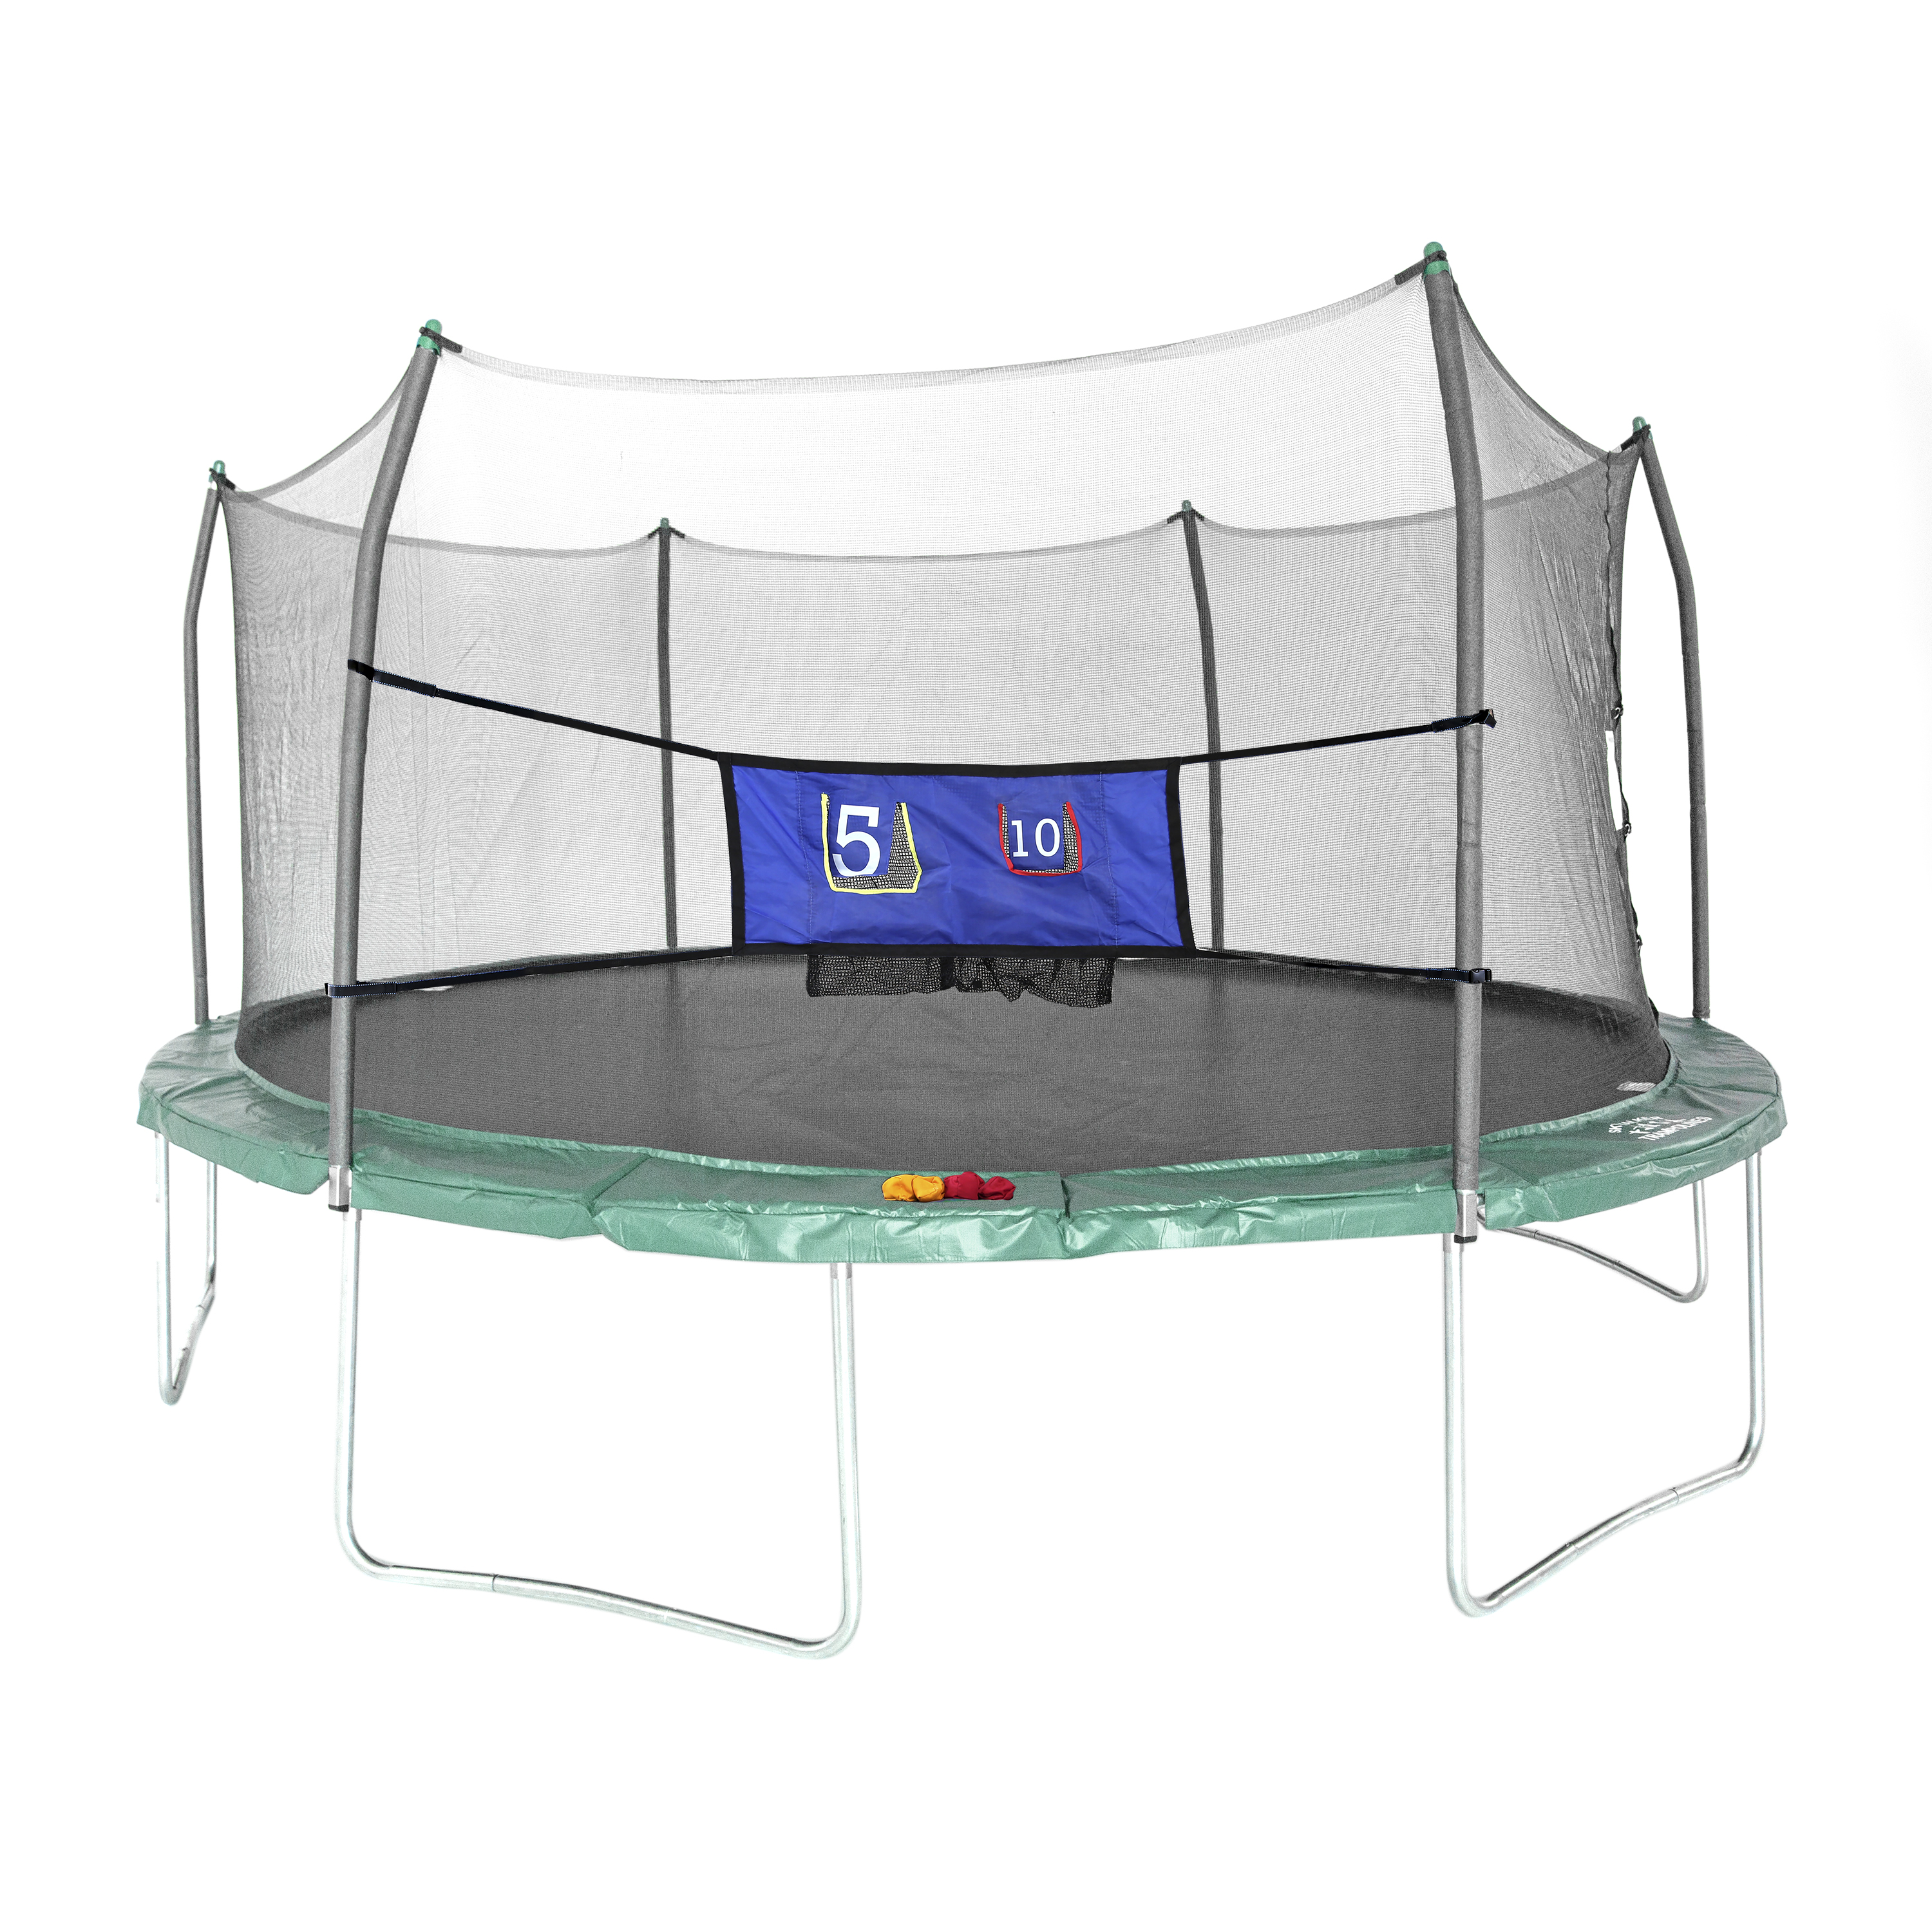 Skywalker Trampolines Green 16 Foot Oval Trampoline With: Skywalker Trampolines Oval 16-Foot Trampoline, With Toss